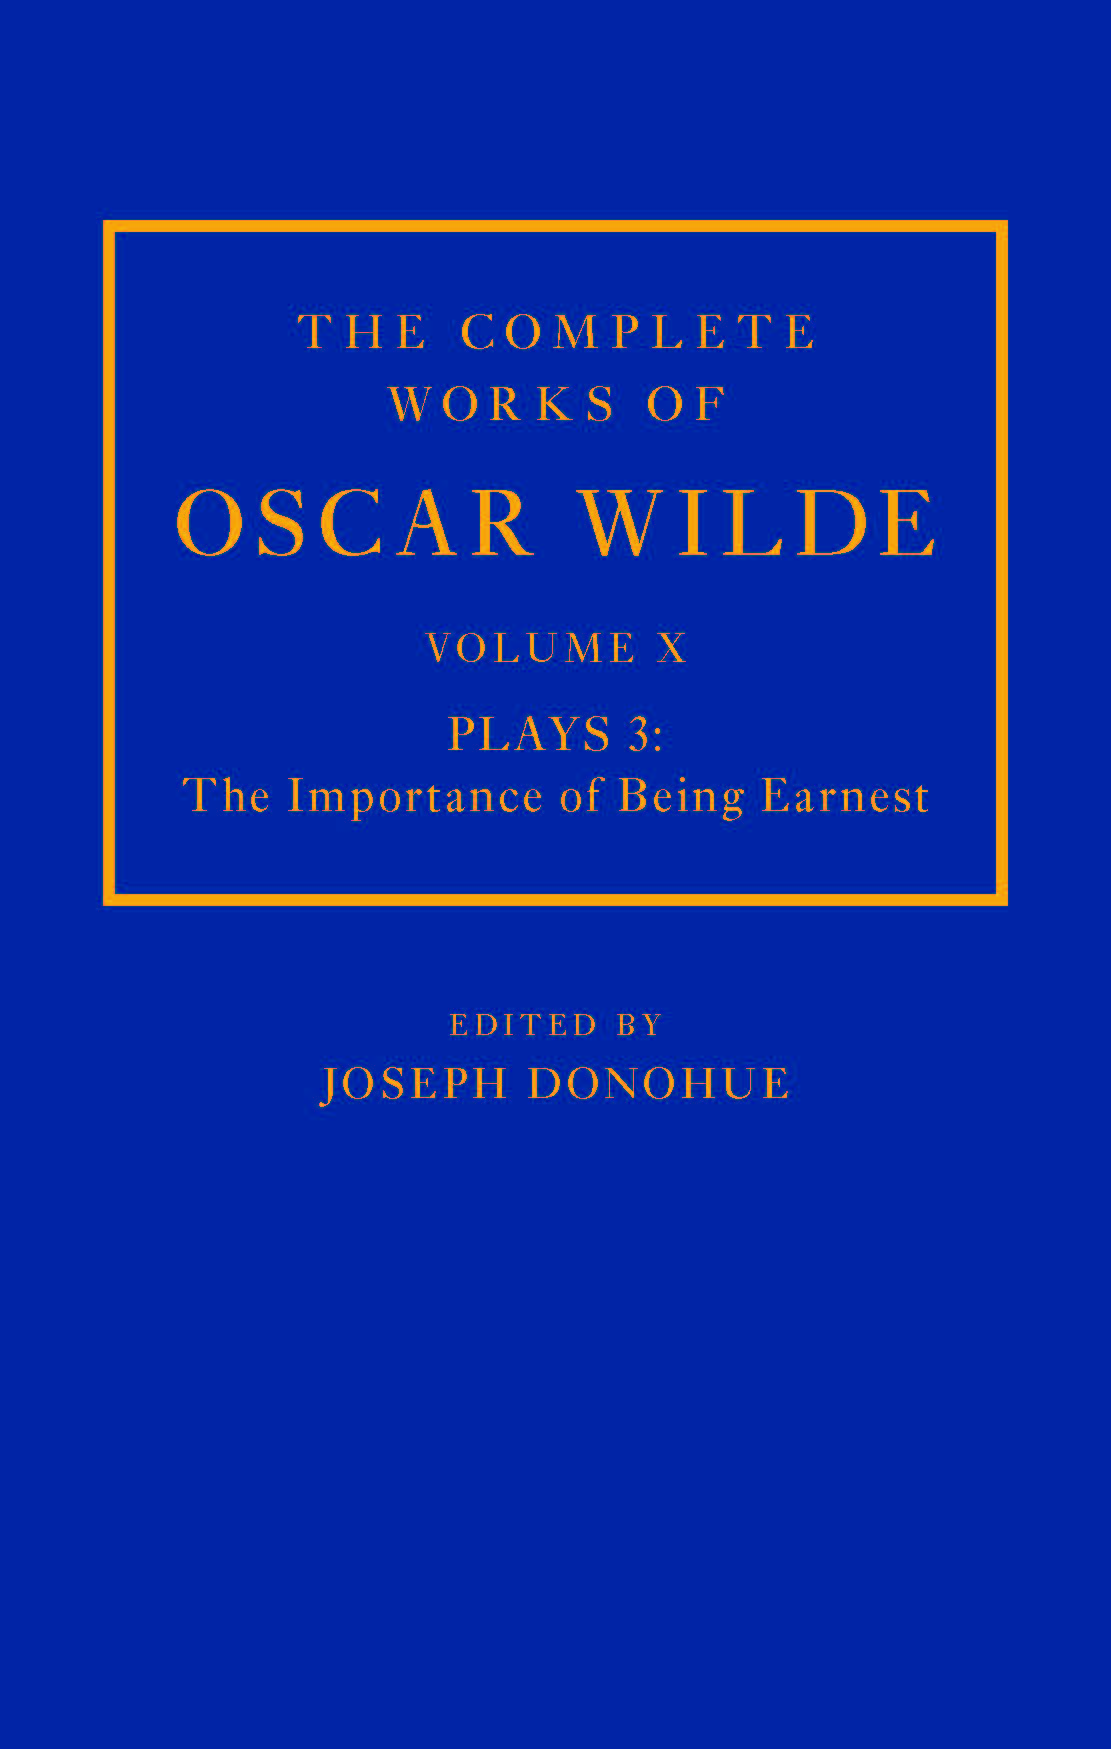 The First Act of The Importance of Being Earnest, from The Complete Works of Oscar Wilde